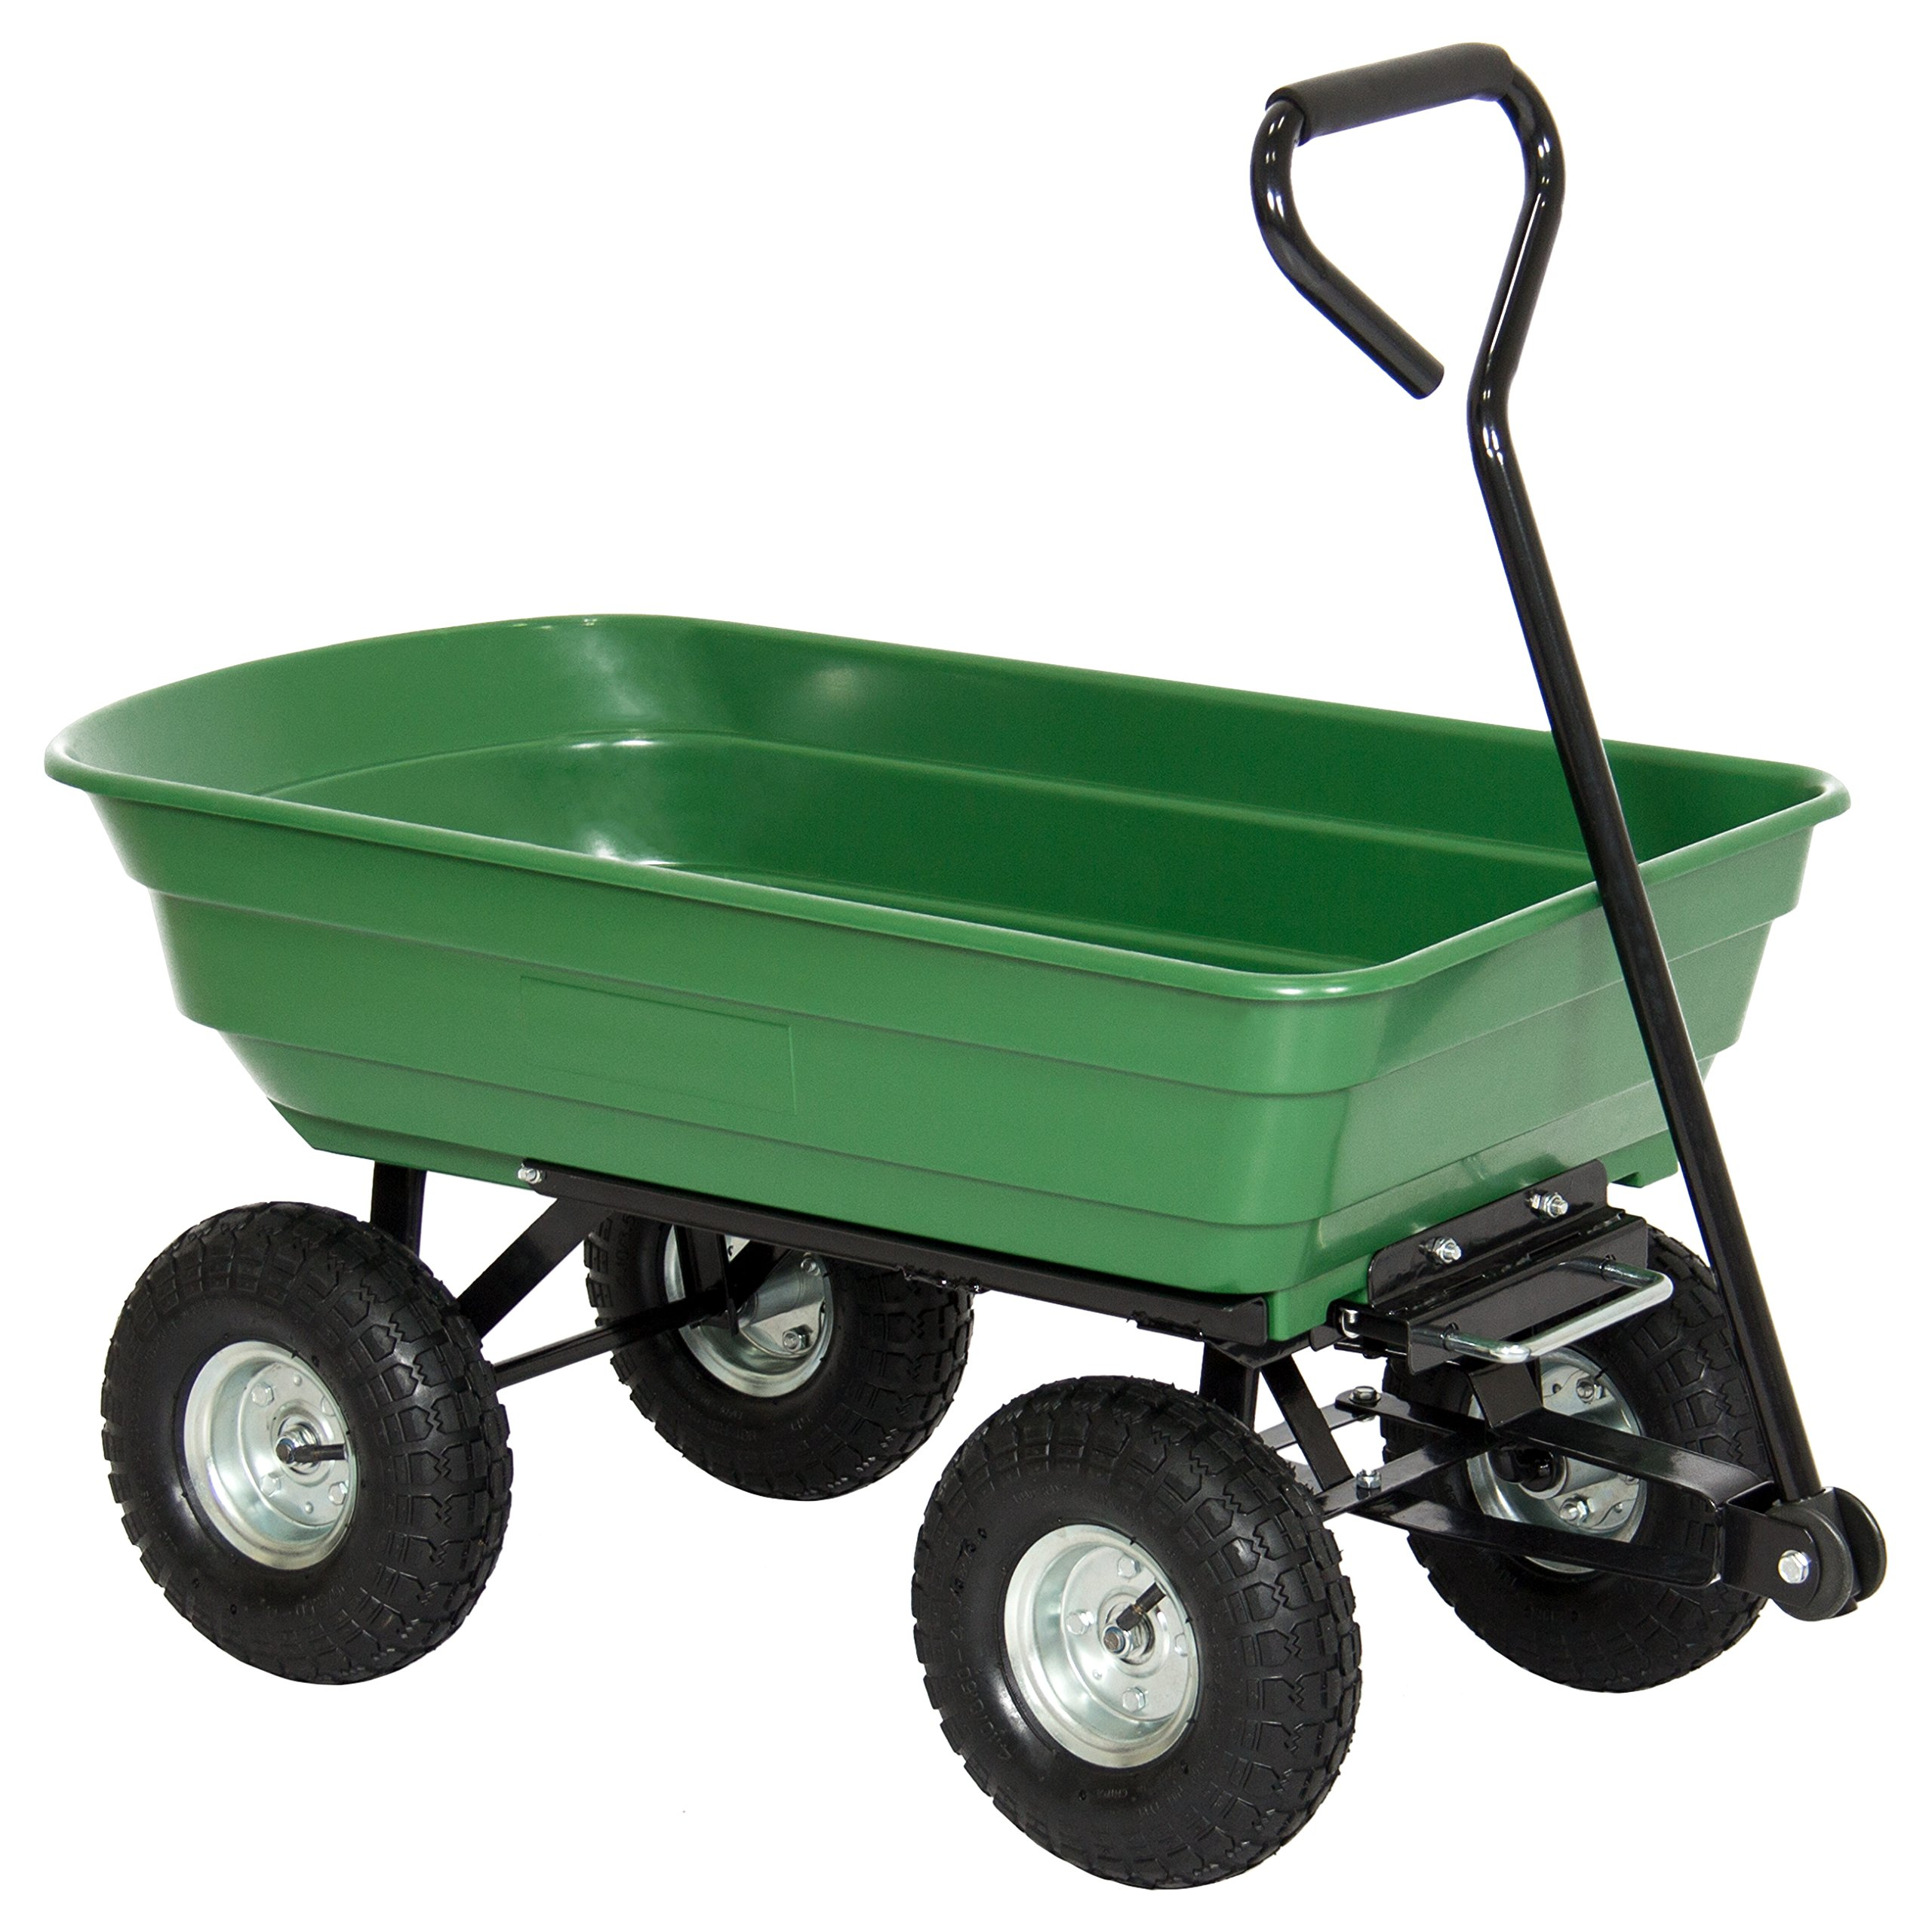 green the hose hoses cart products garden expandable world gardspo best worlds strongest s on planet